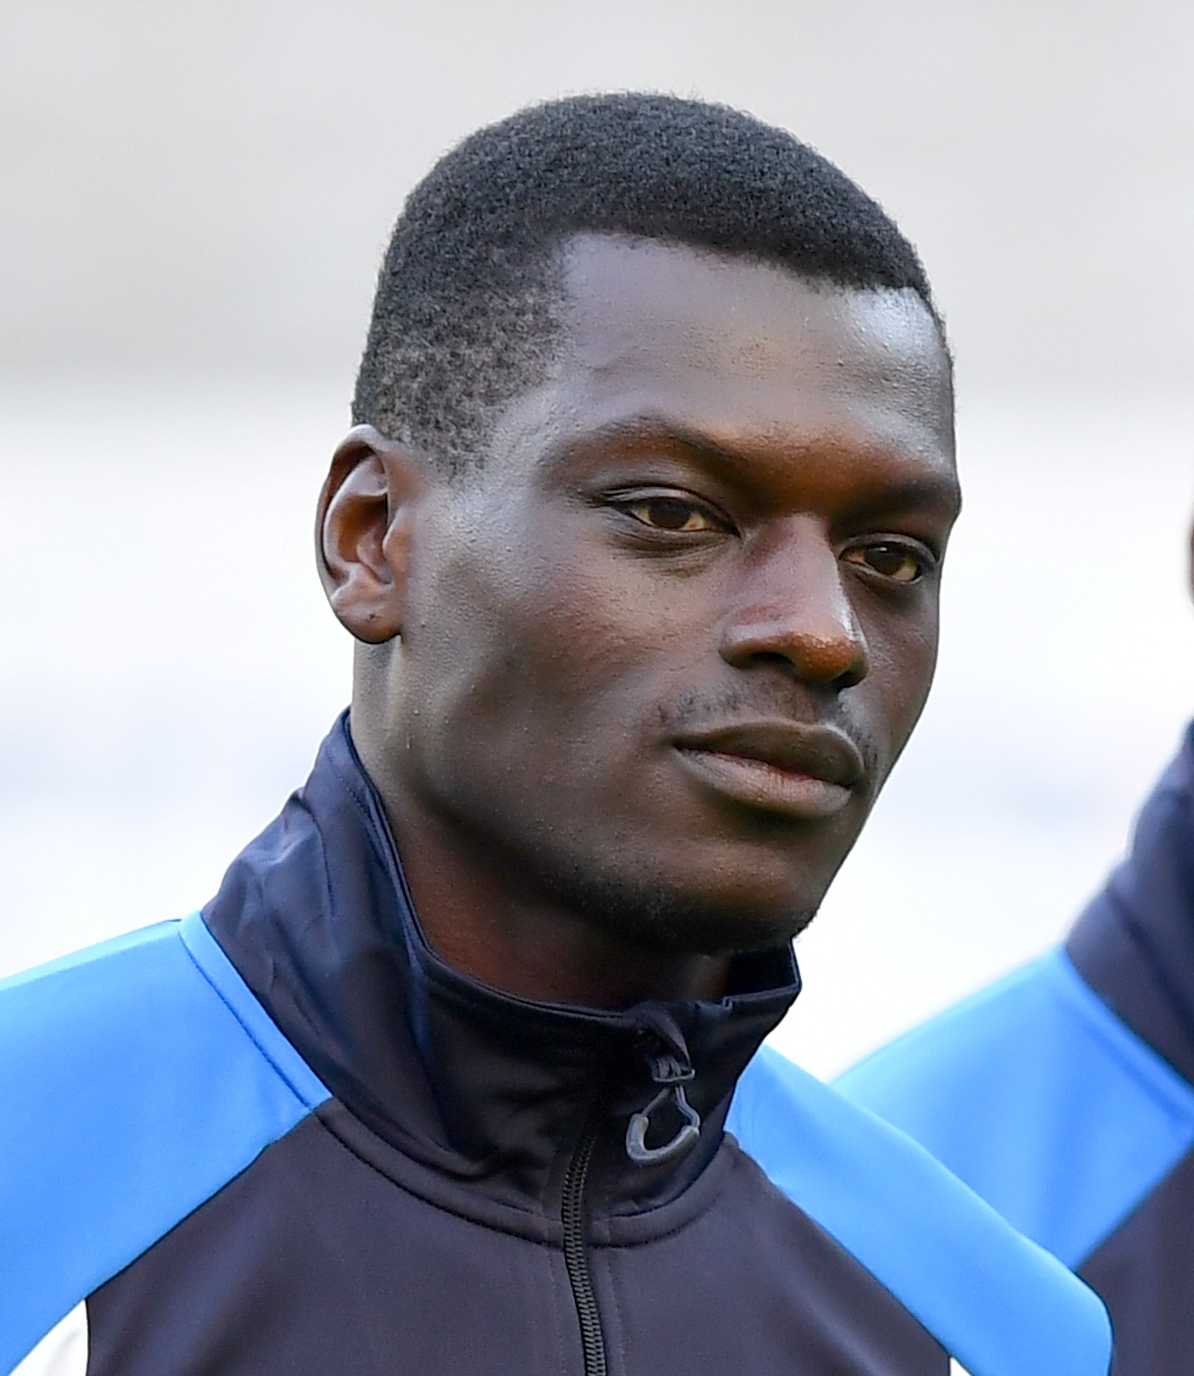 Joseph Mendes scored twice against Middlesbrough as Reading booked their place in the Premier League Cup quarter finals.